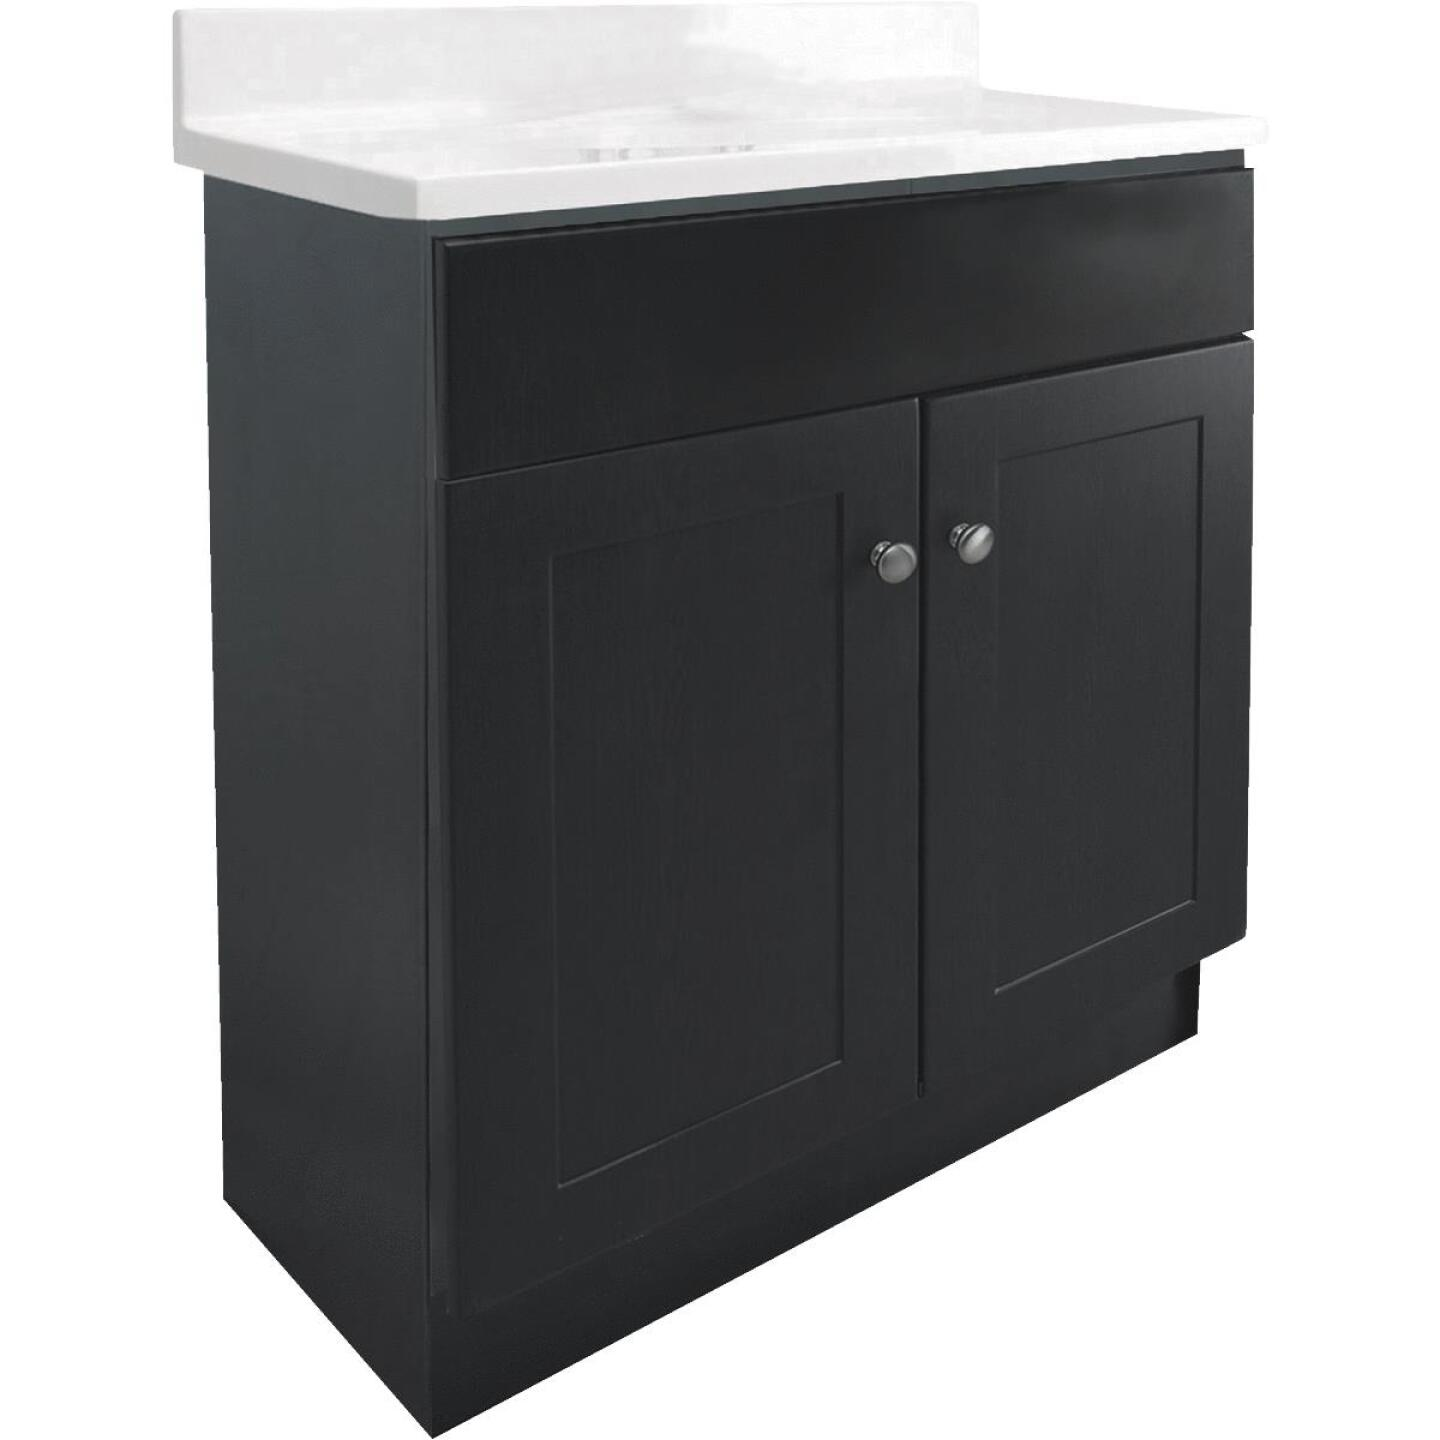 Design House Espresso 24 In. W x 31-1/2 In. H x 18 In. D Combo Vanity with Cultured Marble Top Image 1